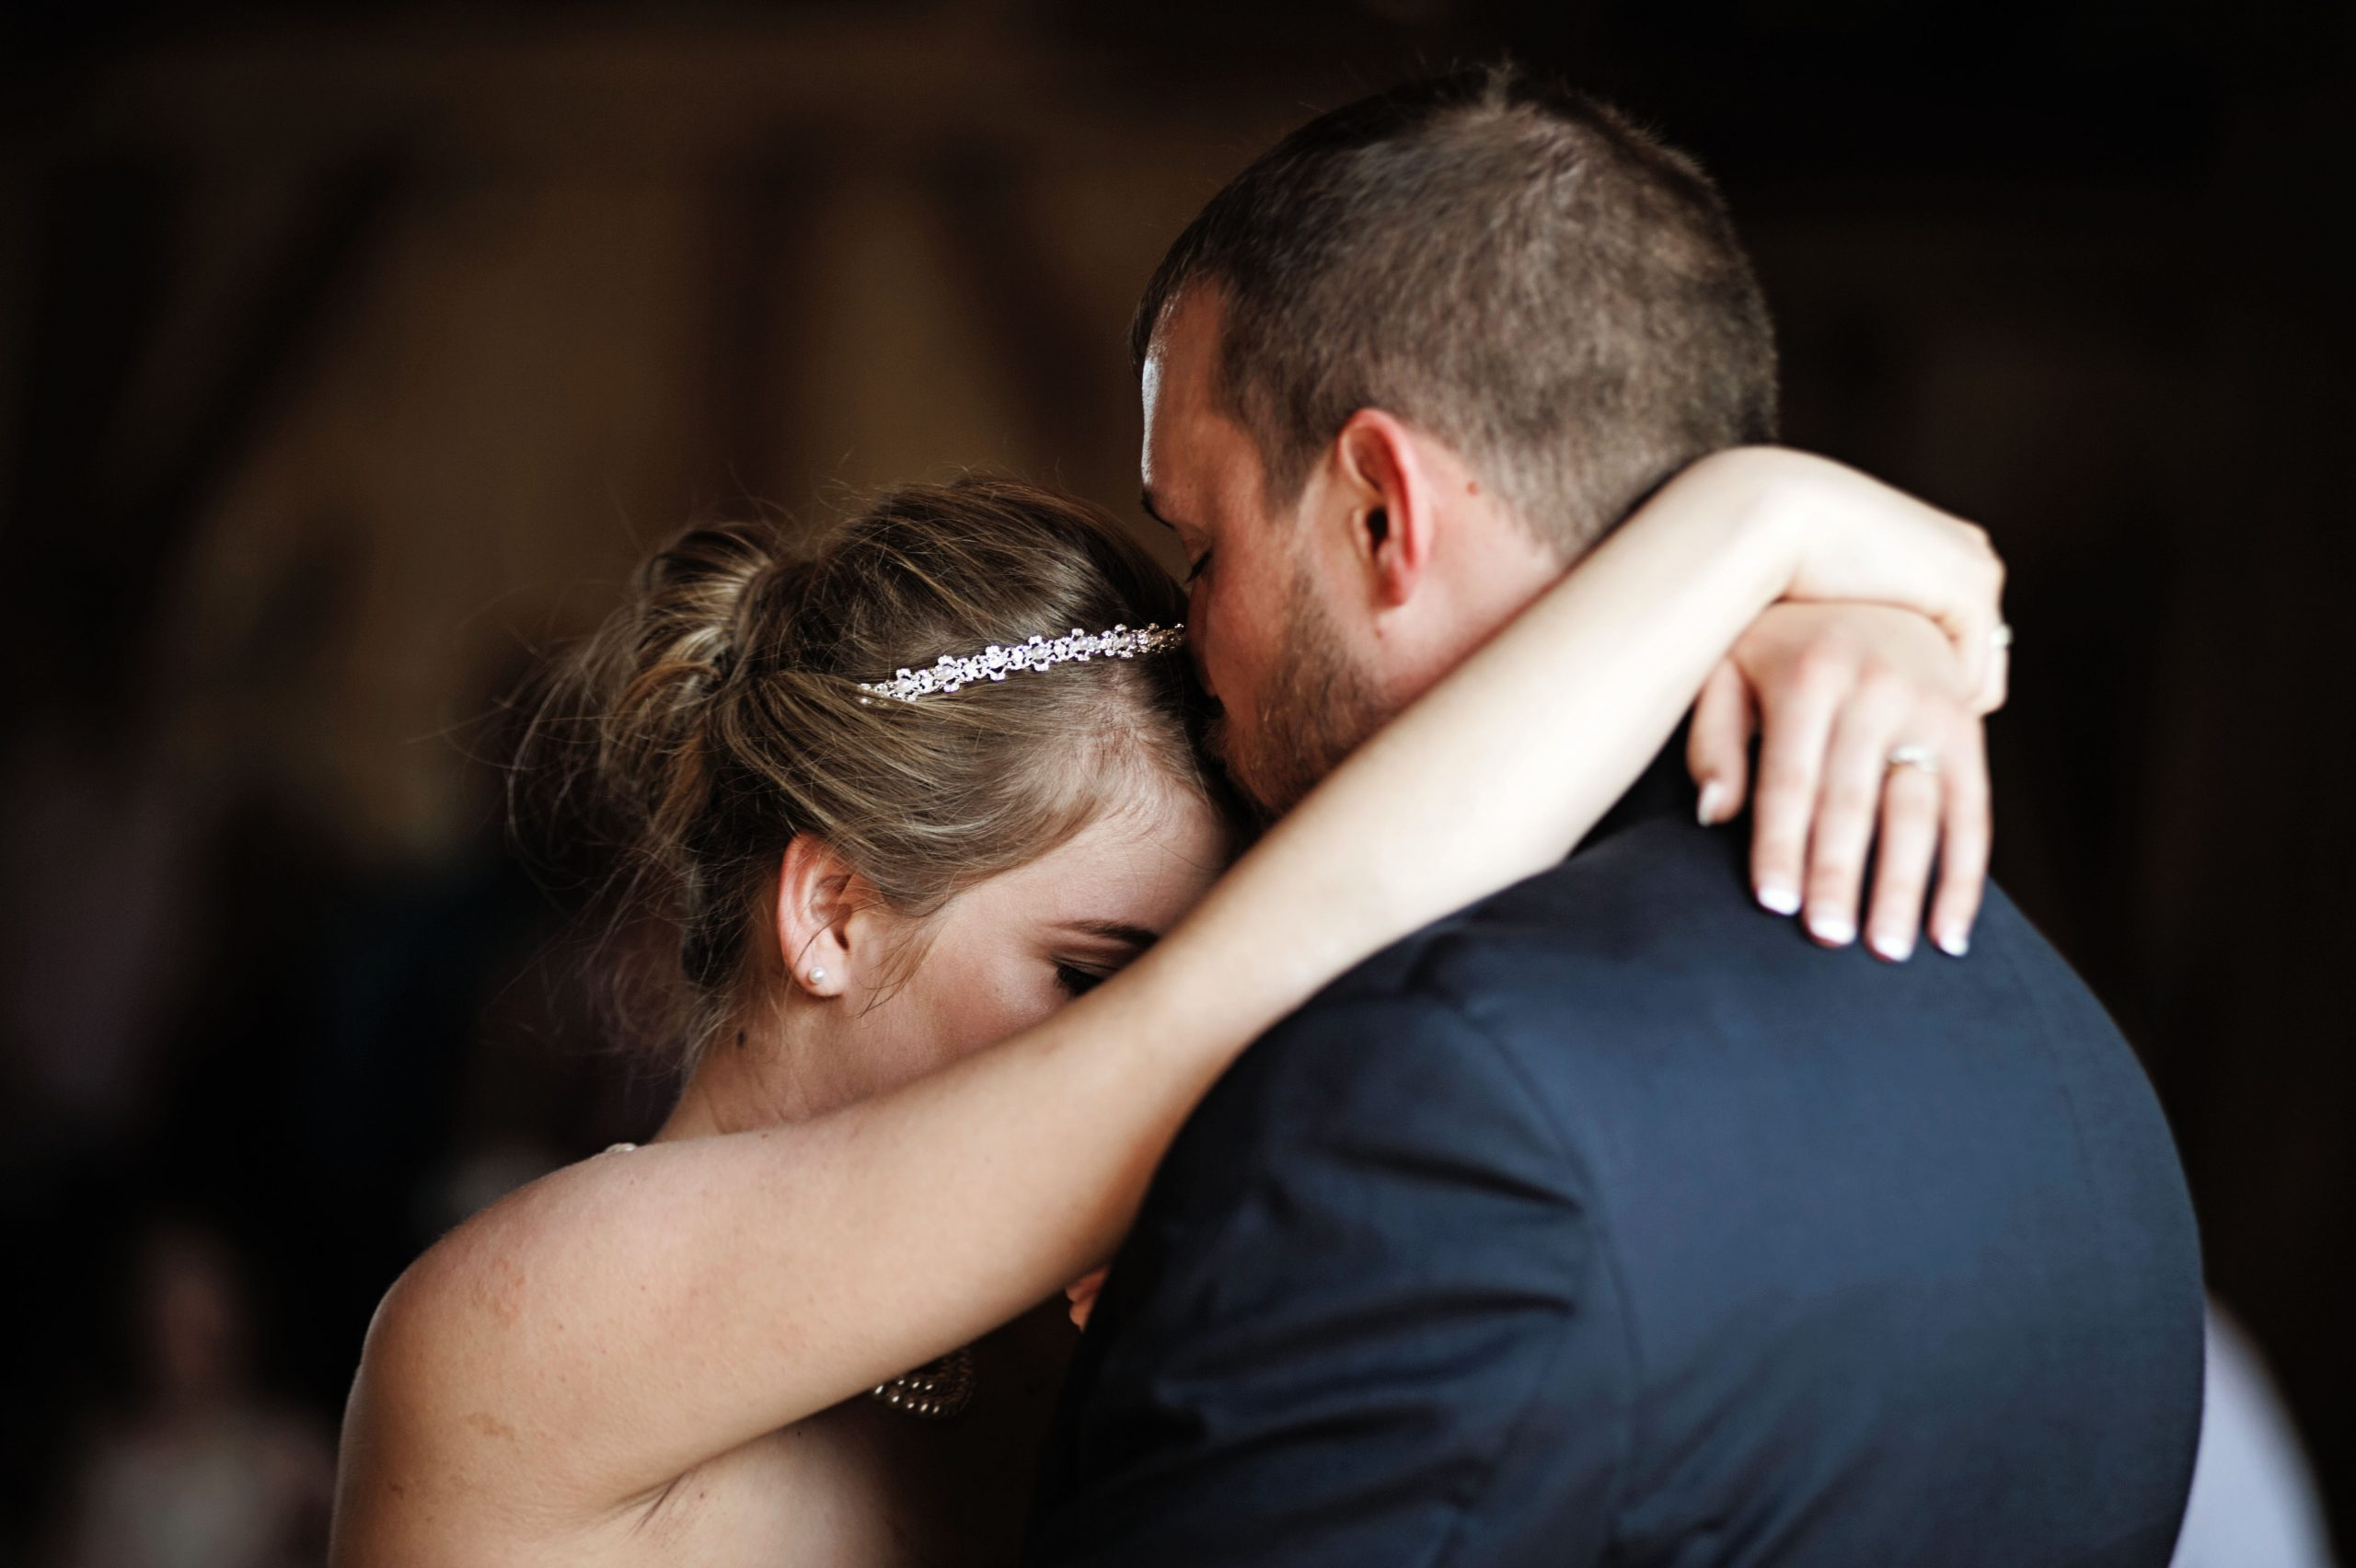 The first dance is a special moment for the newlyweds at Lakeview Farms of York, PA. Photographing this special moment is Lovefusion Photography of Lancaster, PA. Featured on Dream Weddings.